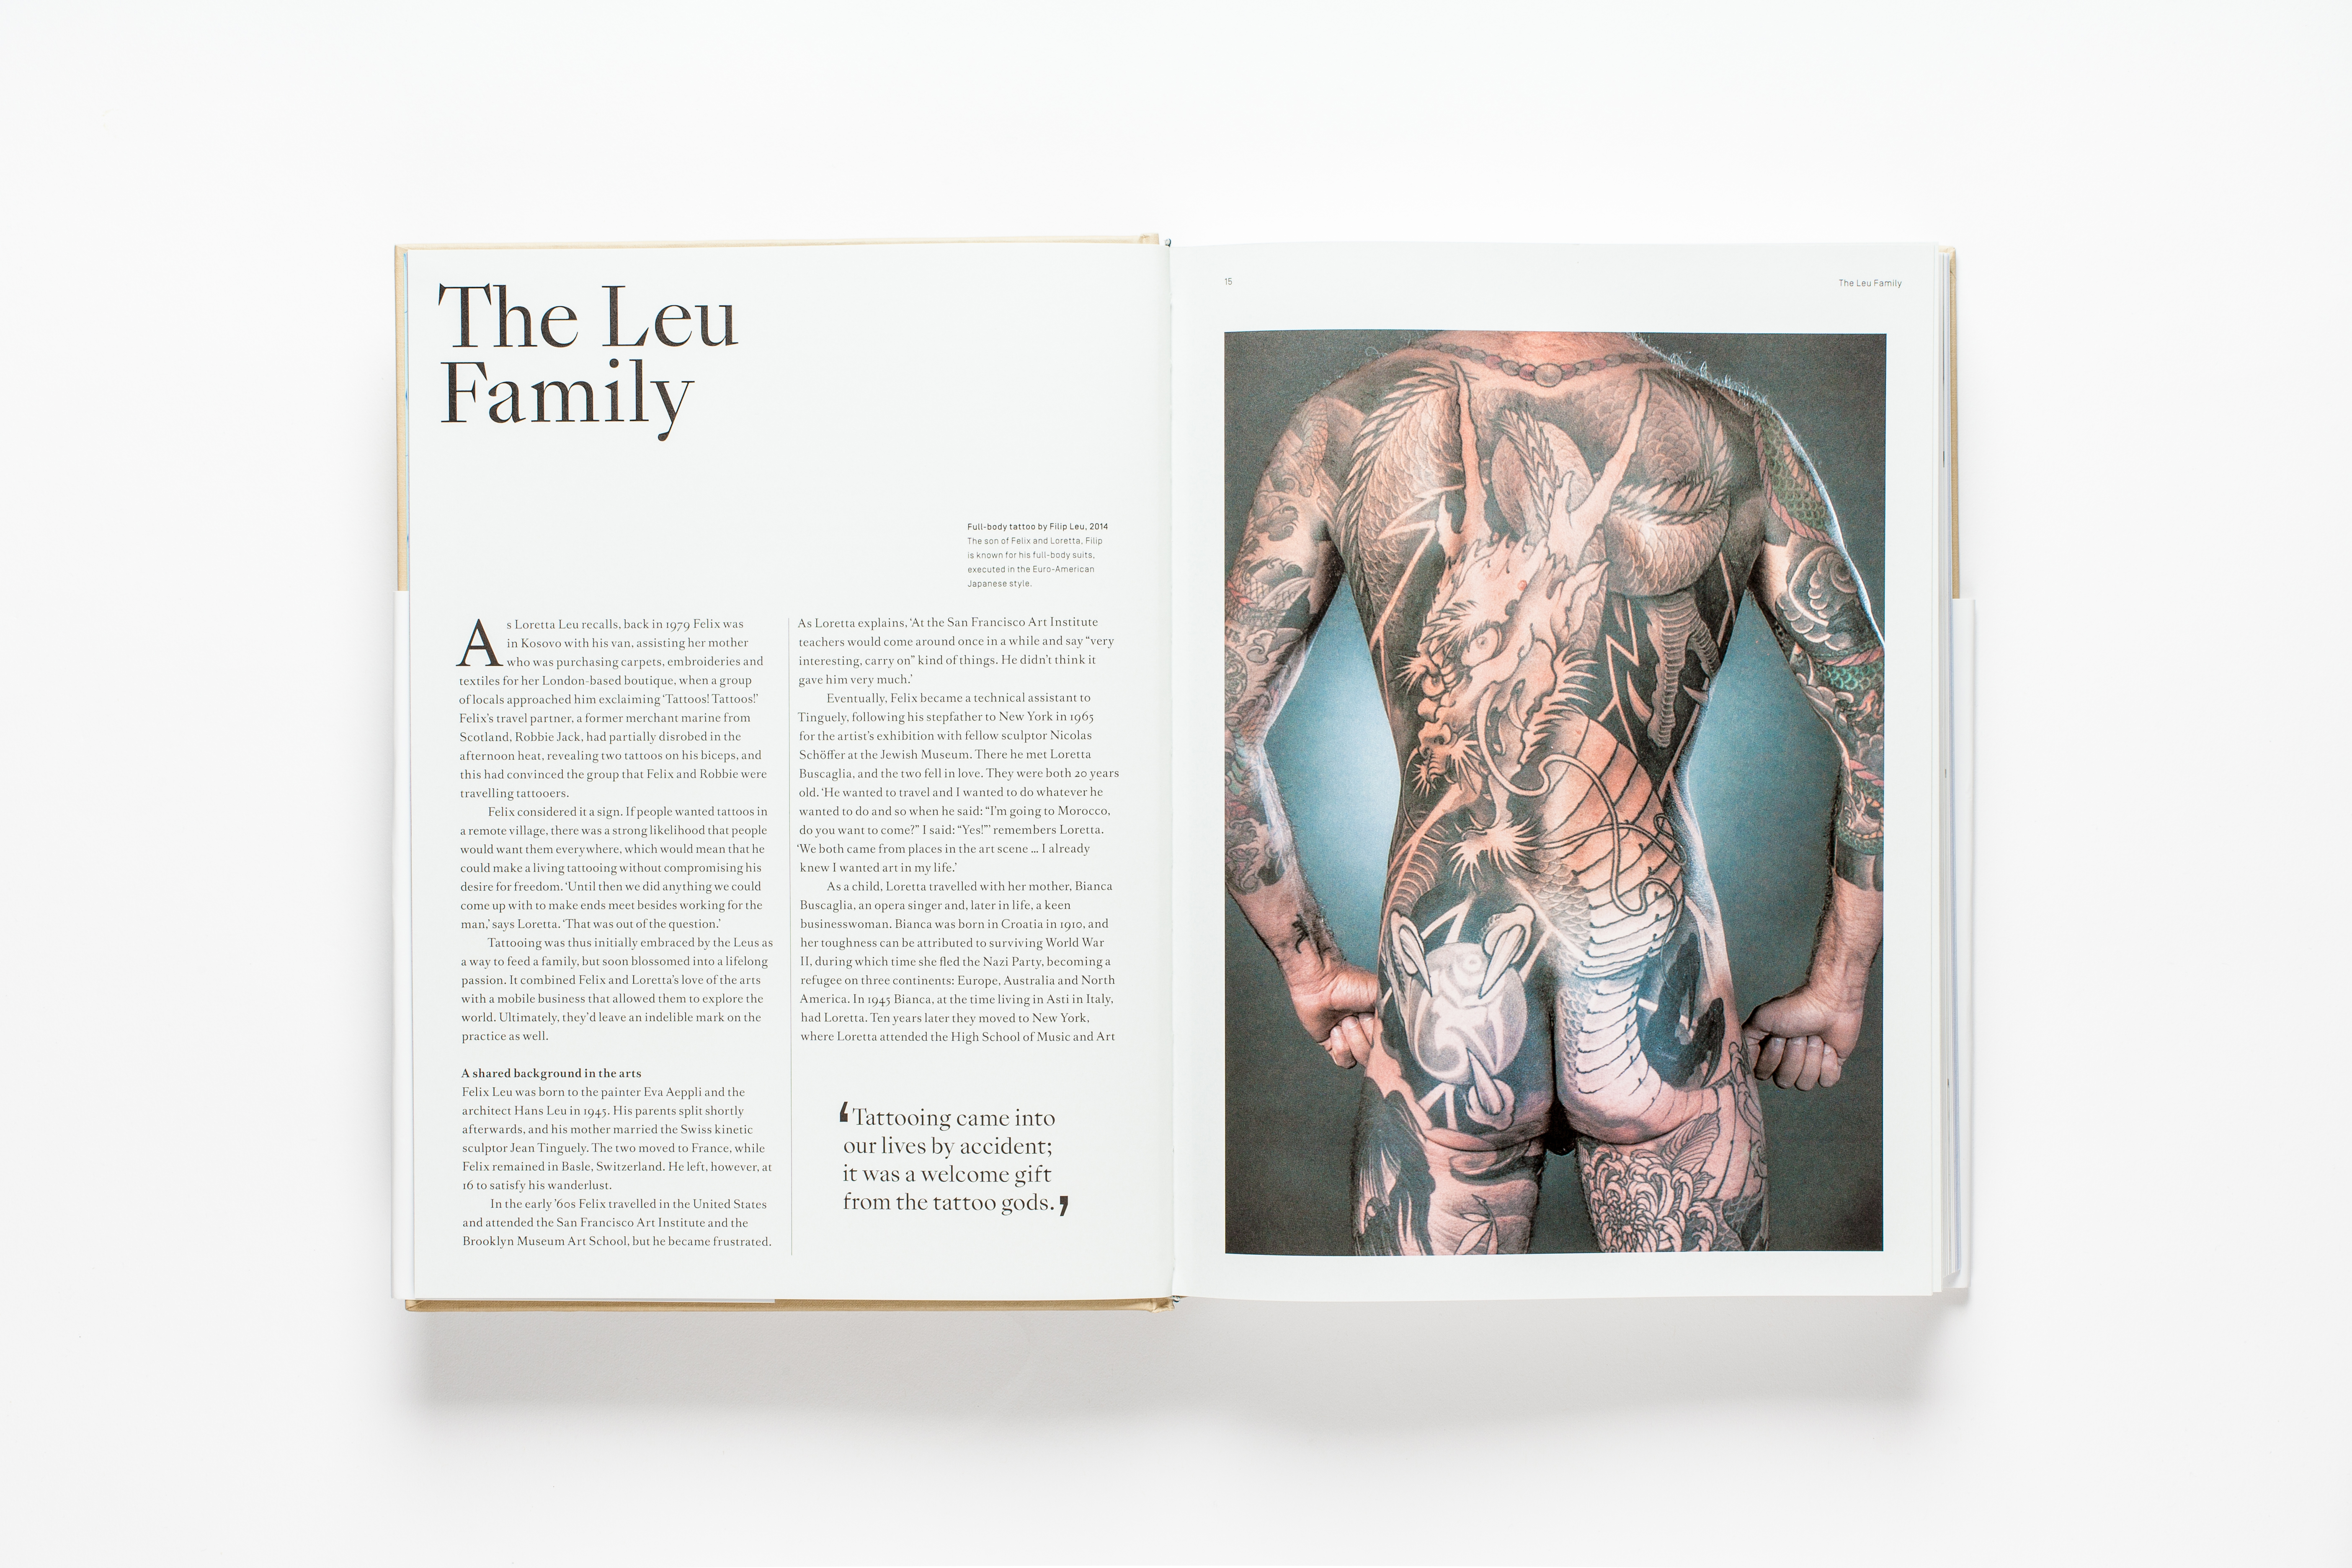 From TTT:Tattoo. Courtesy of Laurence King Publishing.